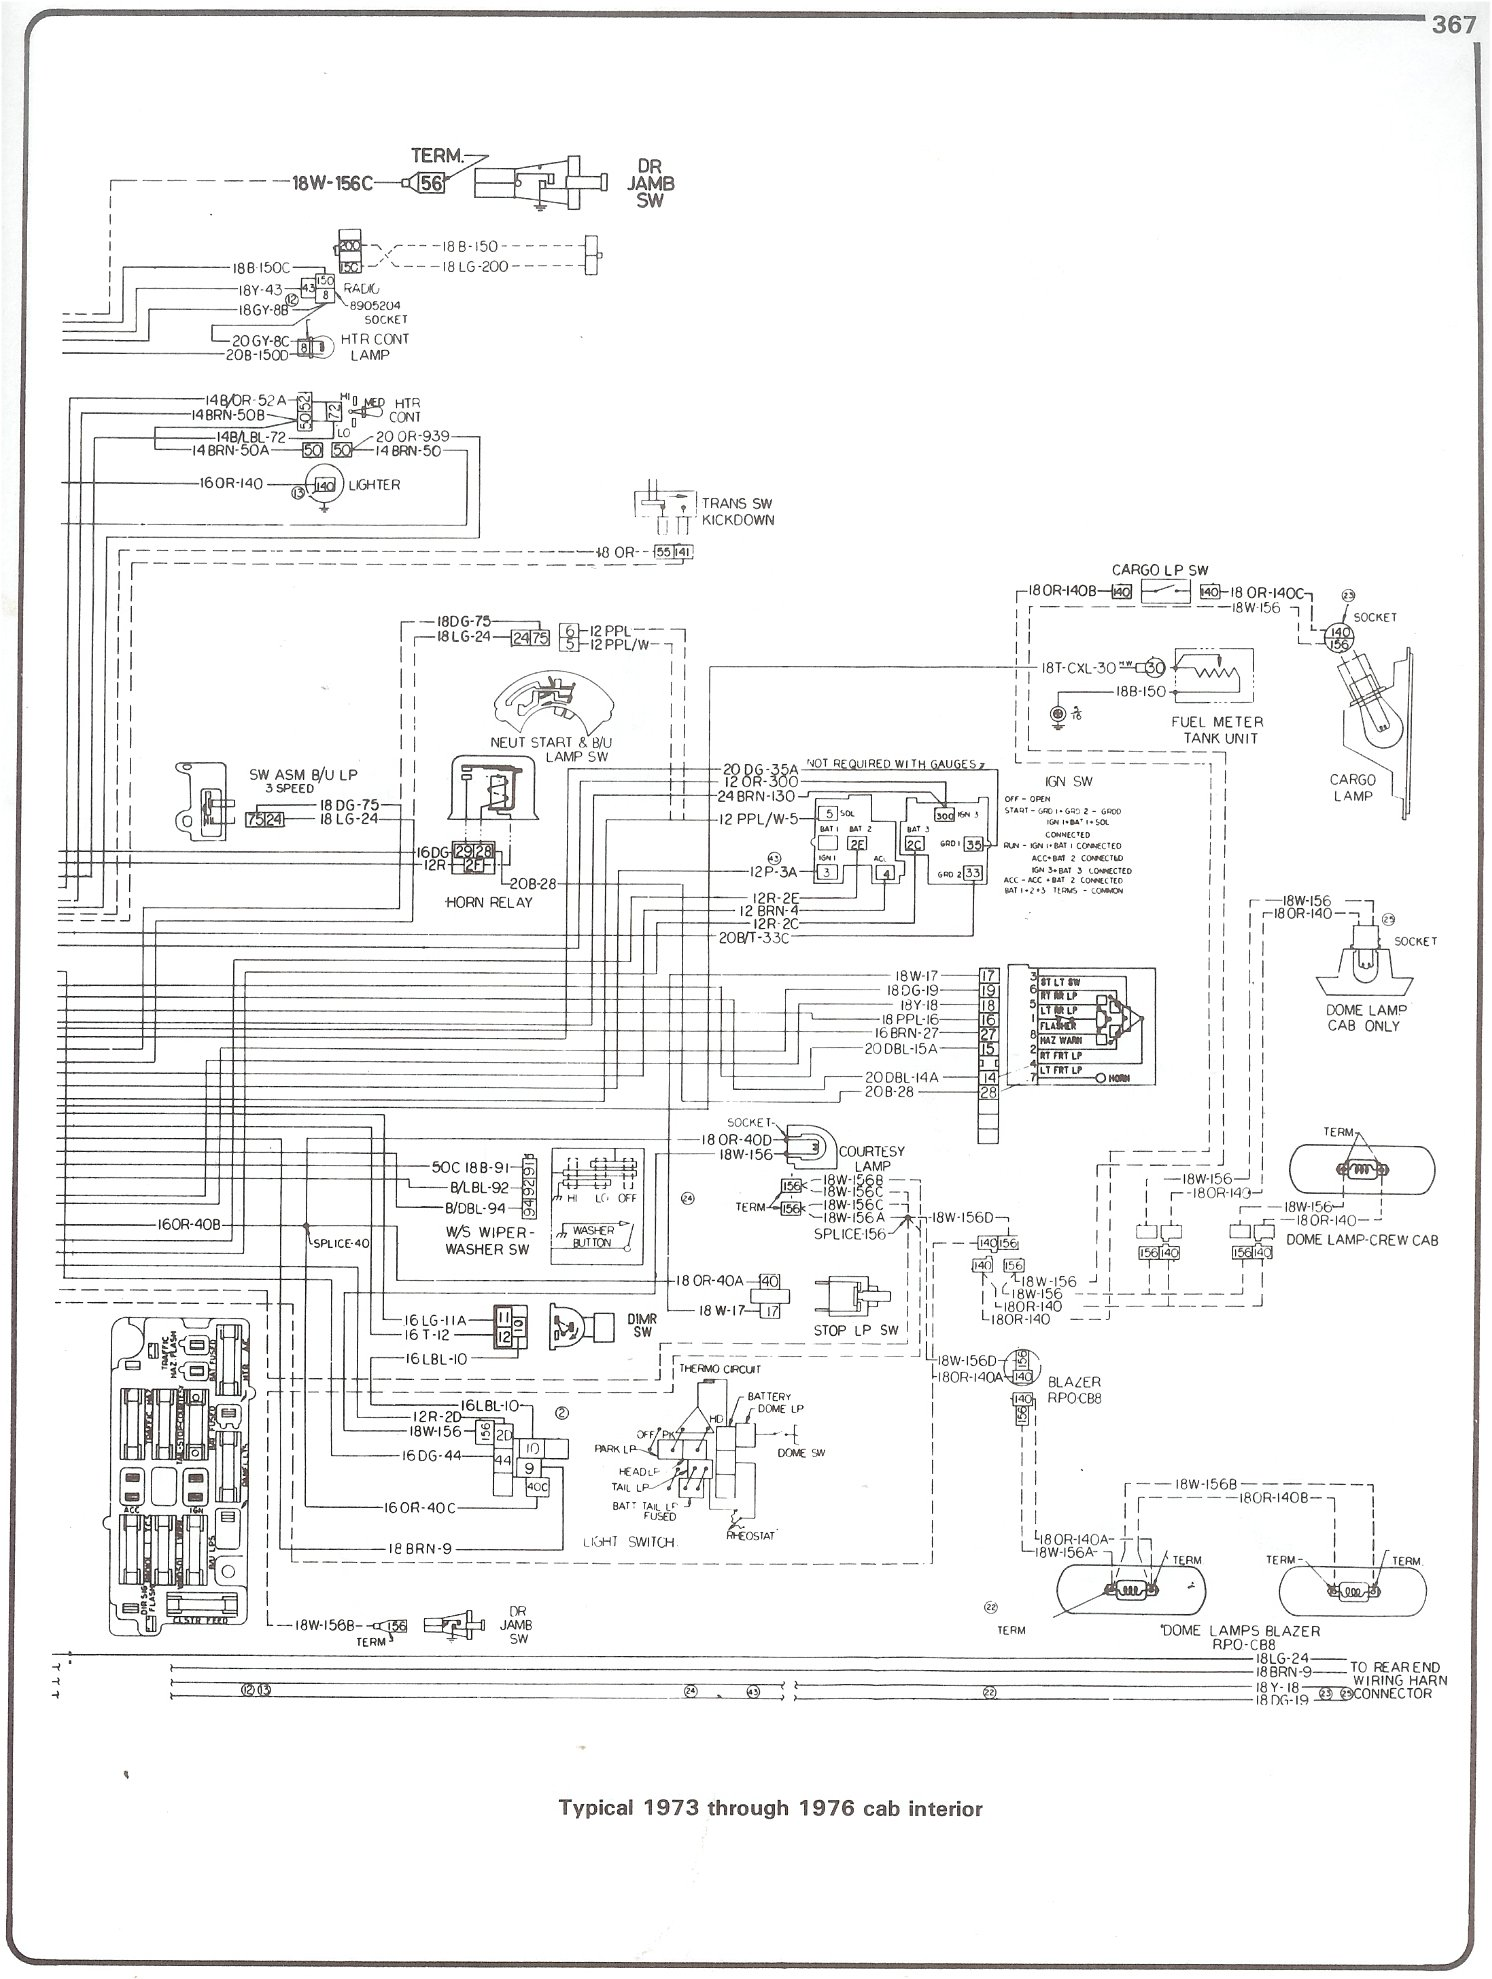 Cab Inter on 1977 Chevy Wiring Harness Diagram